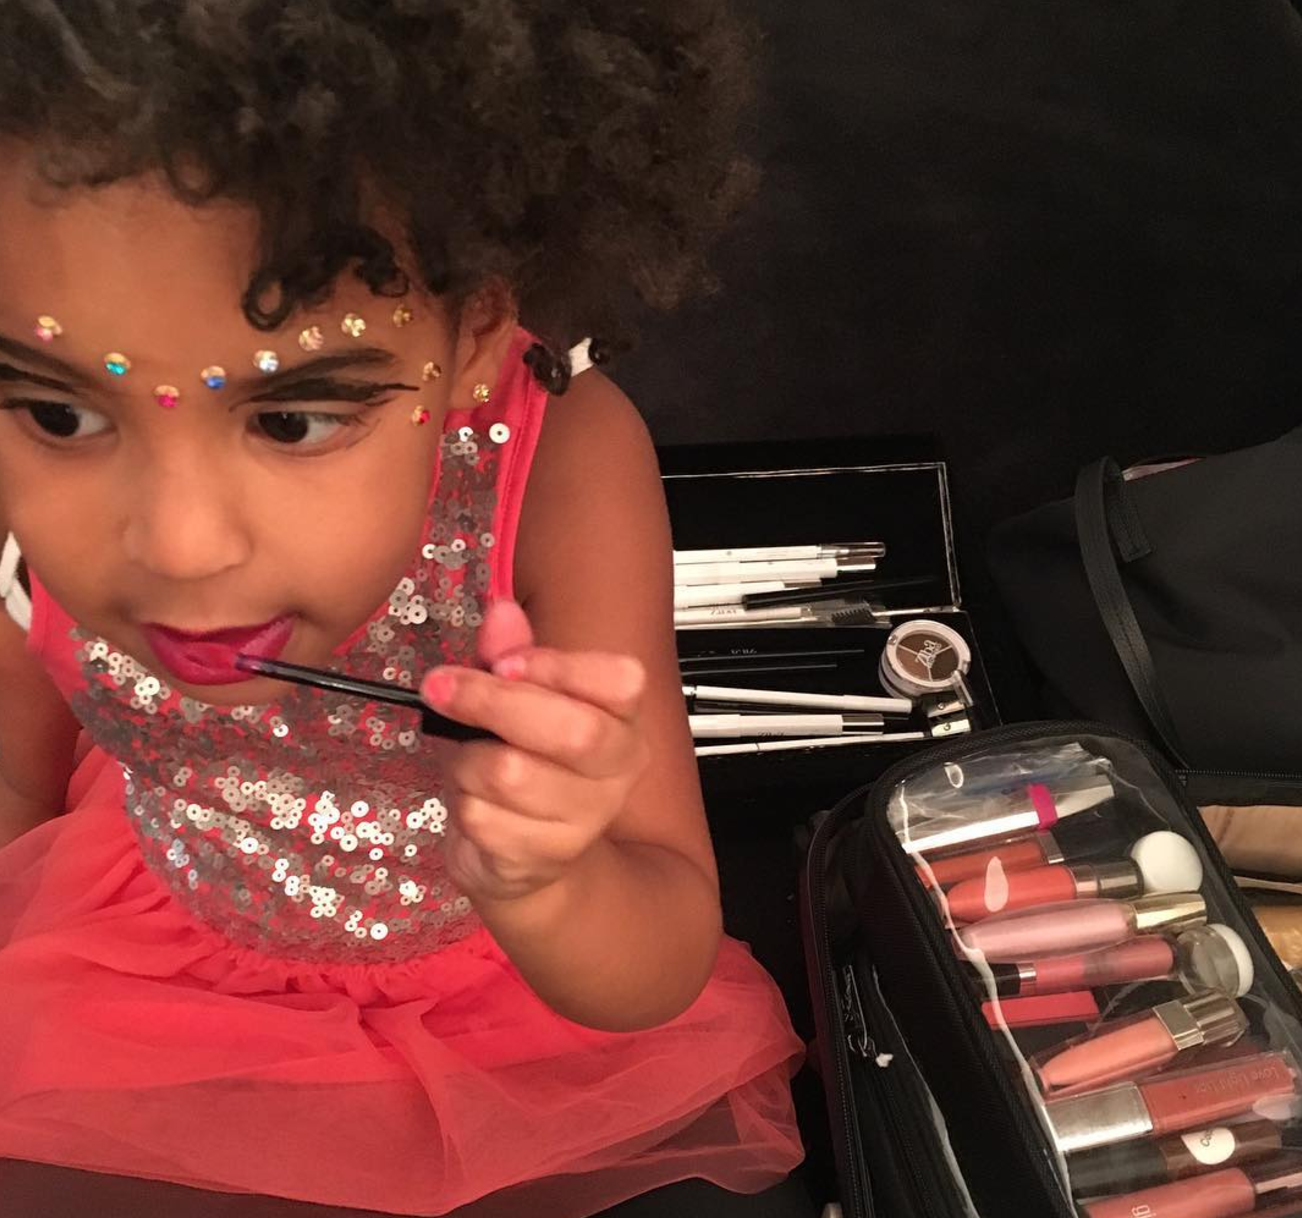 3 When she gave everyone a Blue Ivy-style makeup tutorial.